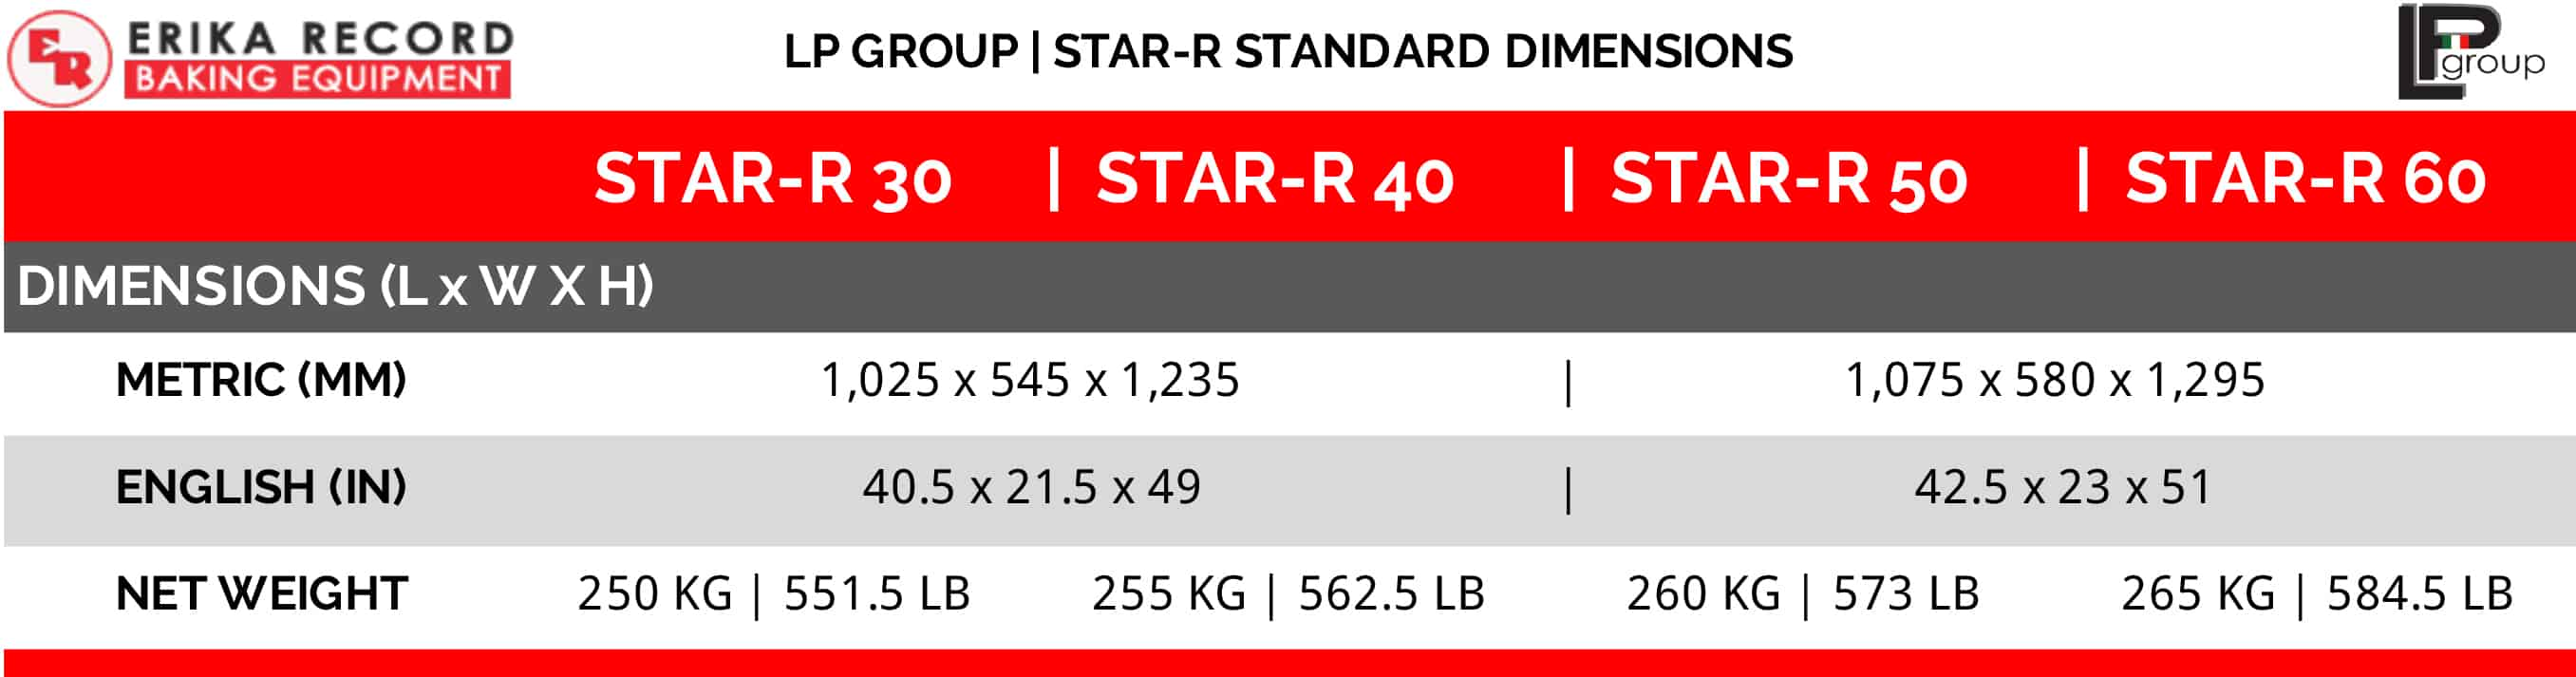 LP Group | Star-R Spiral Mixer | Standard Dimensions